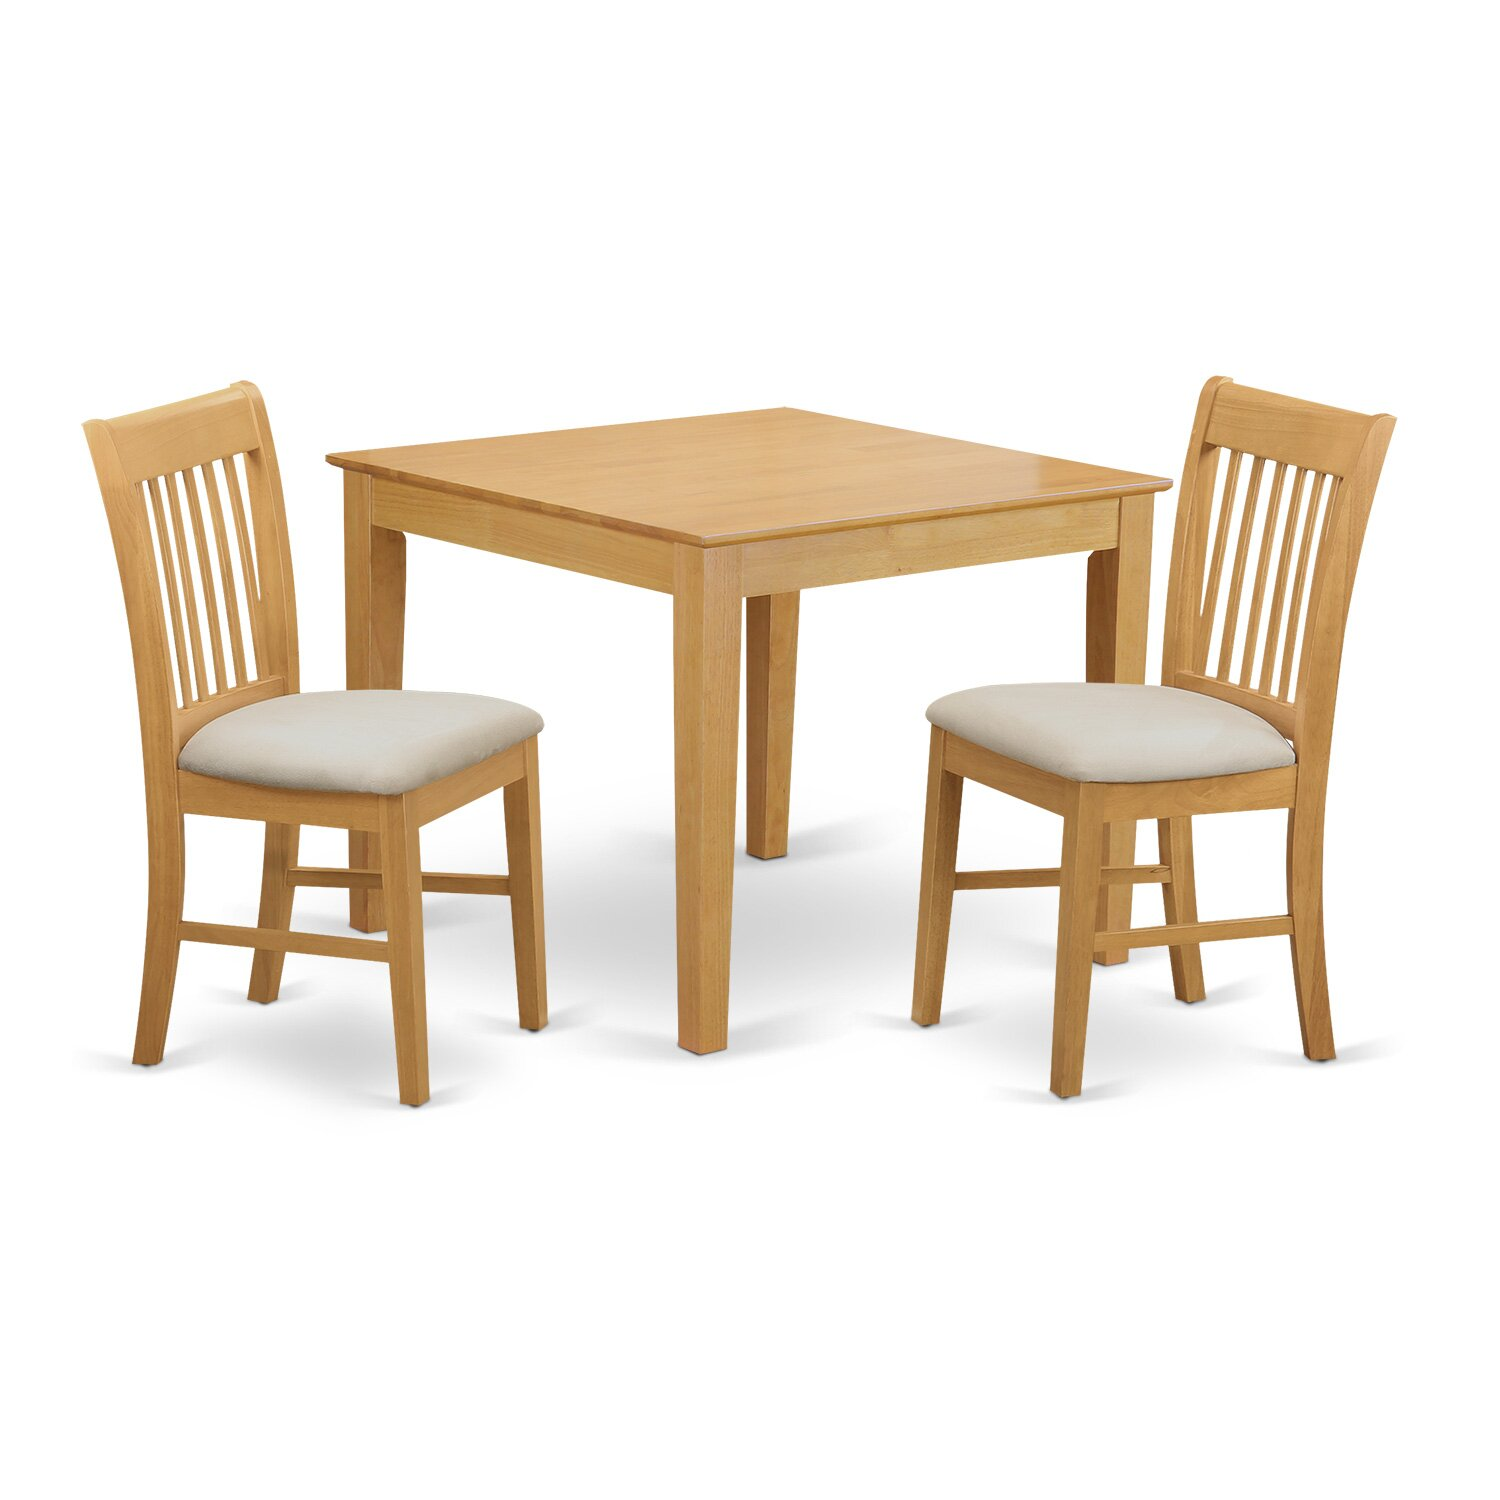 East west oxford 3 piece dining set reviews wayfair for Dinette sets